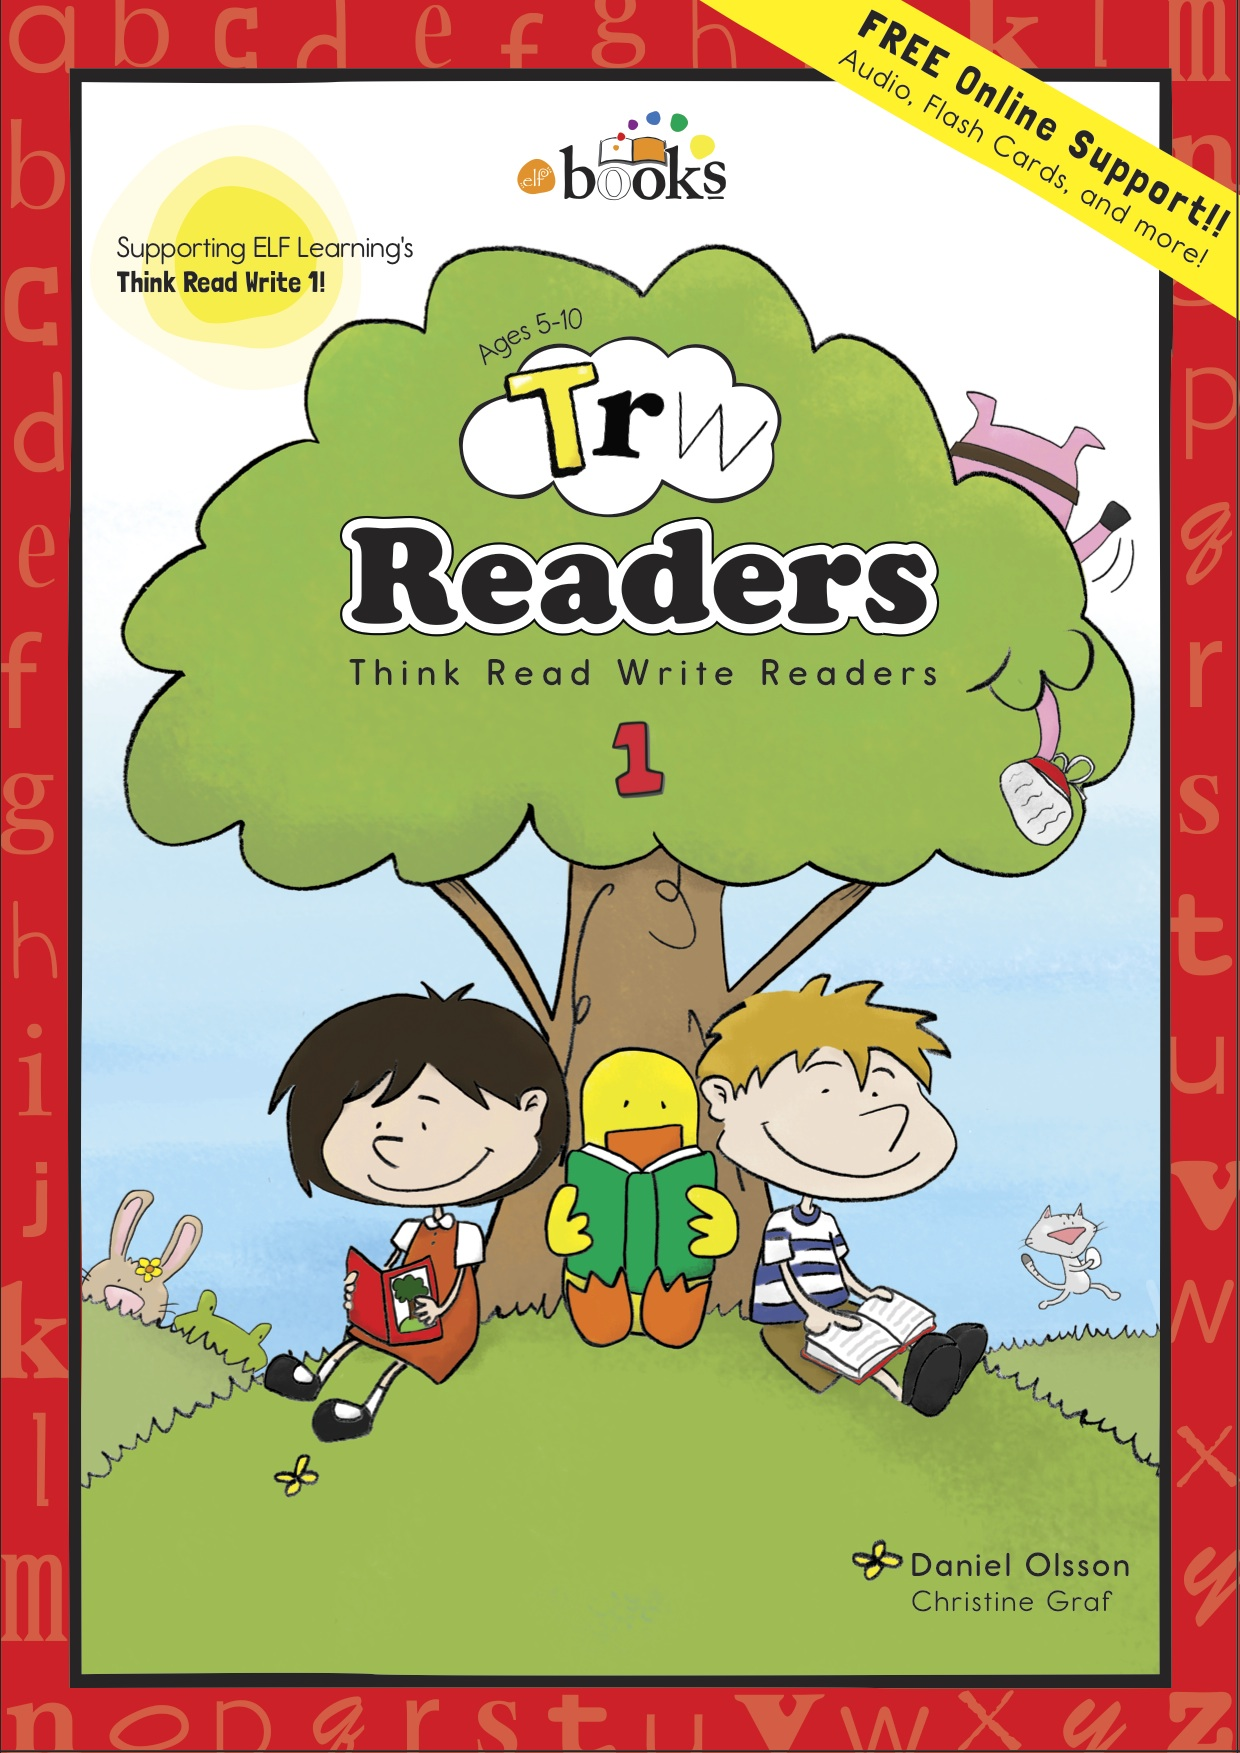 TRW (Think Read Write) 1 Readers